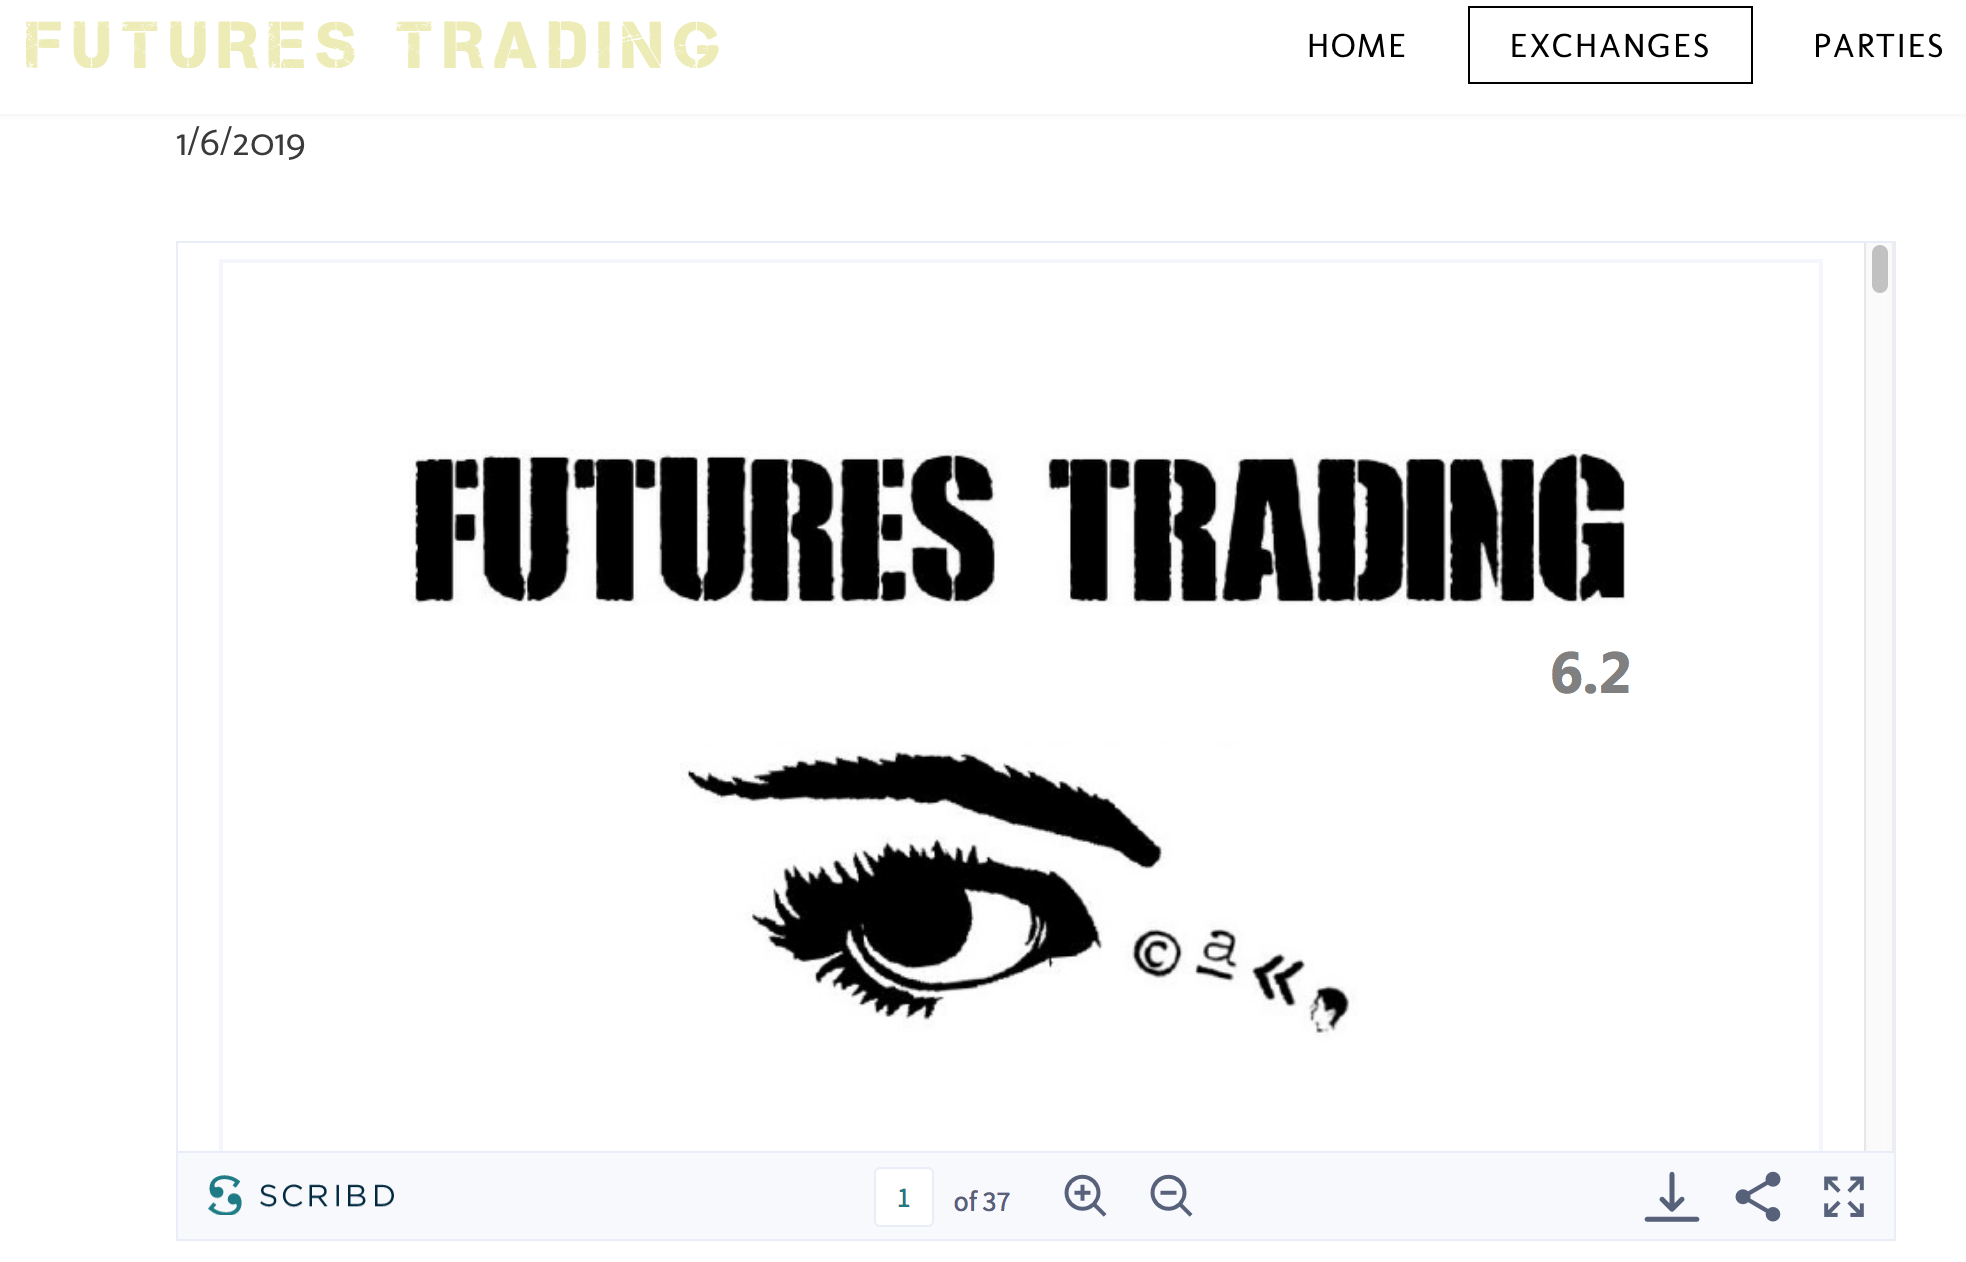 futures trading 6.1